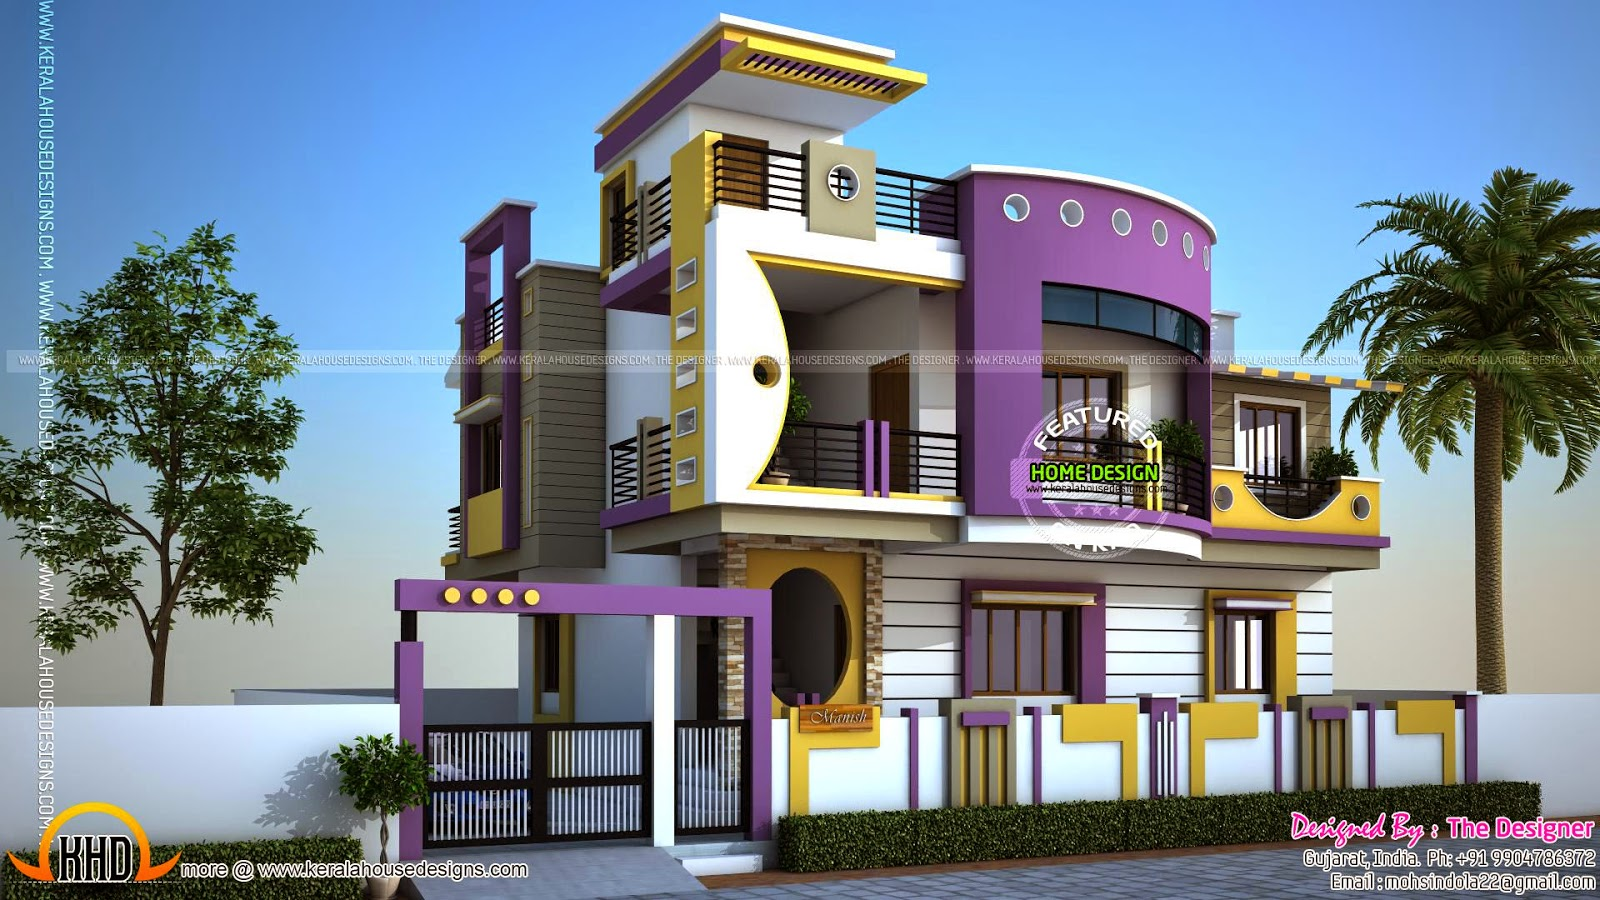 house exterior designs in contemporary style kerala home design and floor plans. Black Bedroom Furniture Sets. Home Design Ideas